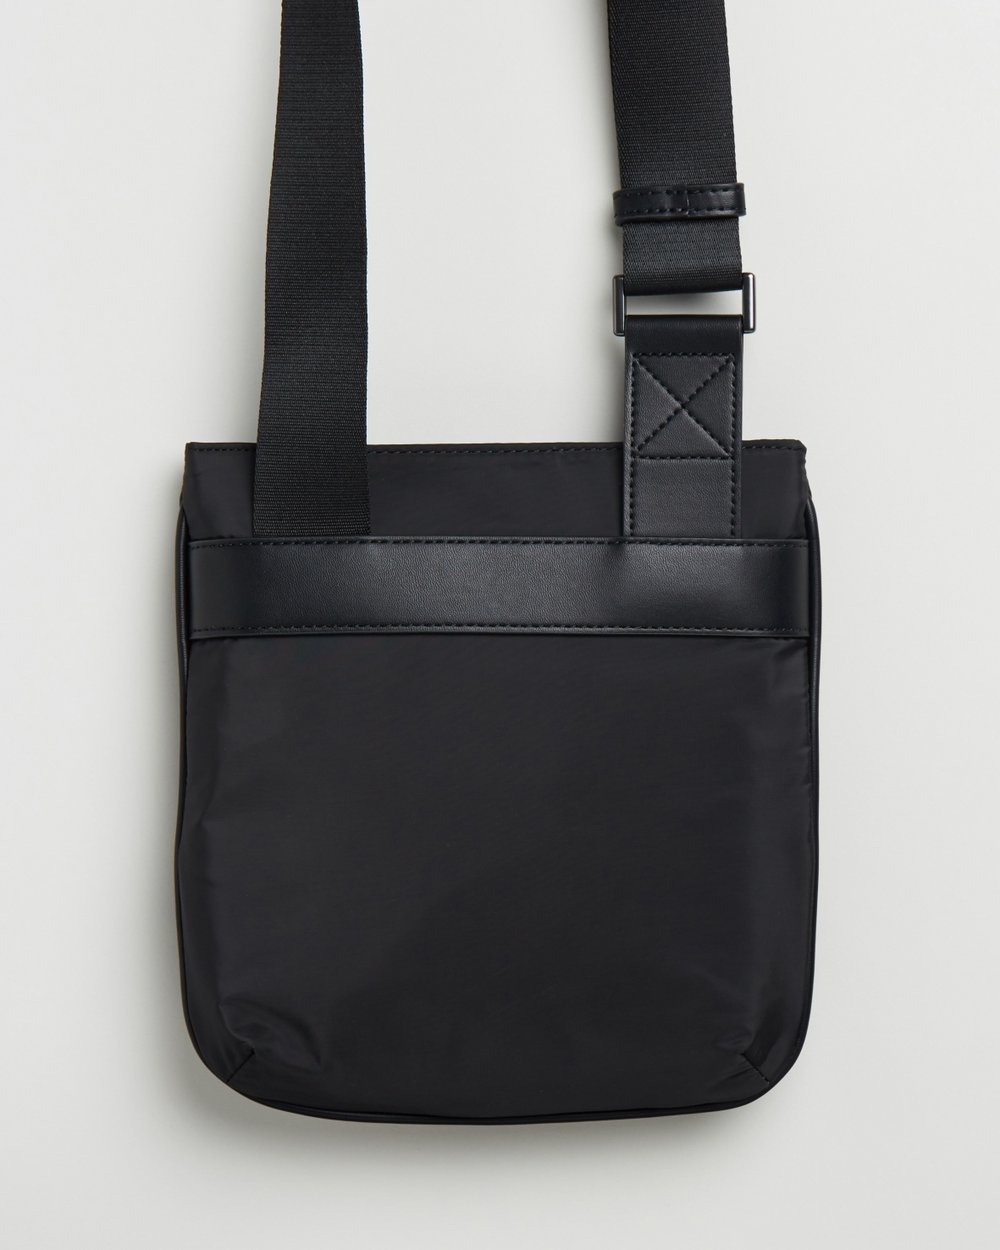 8796a13f2454 Small Flat Messenger Bag by Emporio Armani Online